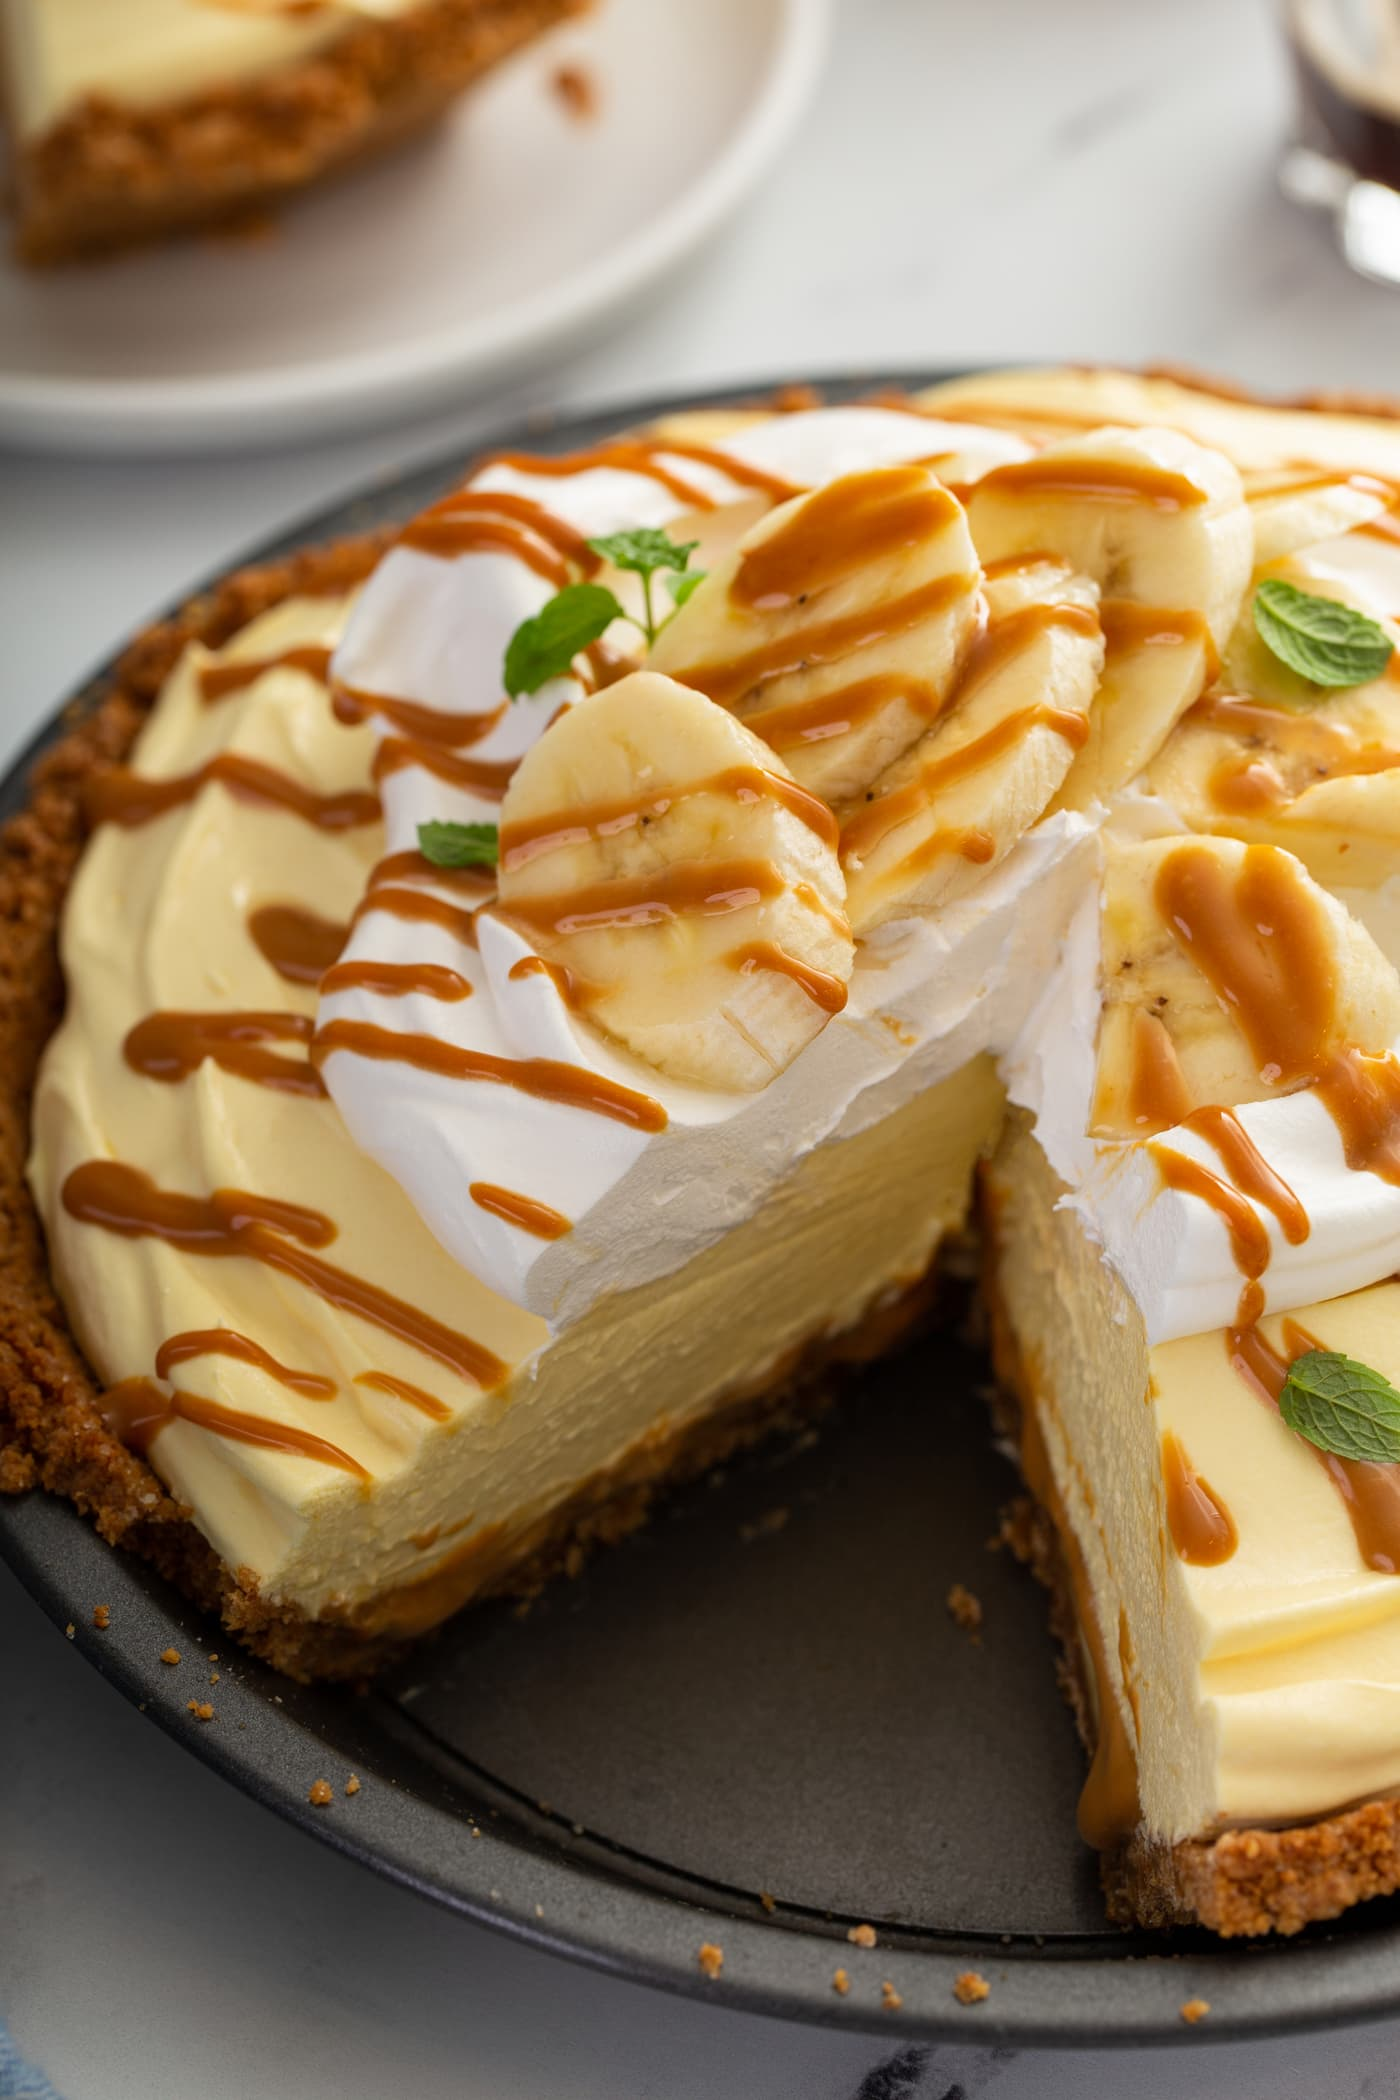 A dulce de leche banana cream pie with whipped cream and sliced bananas on top.  The whole pie is drizzled with dulce de leche and a slice has been cut from the pie.